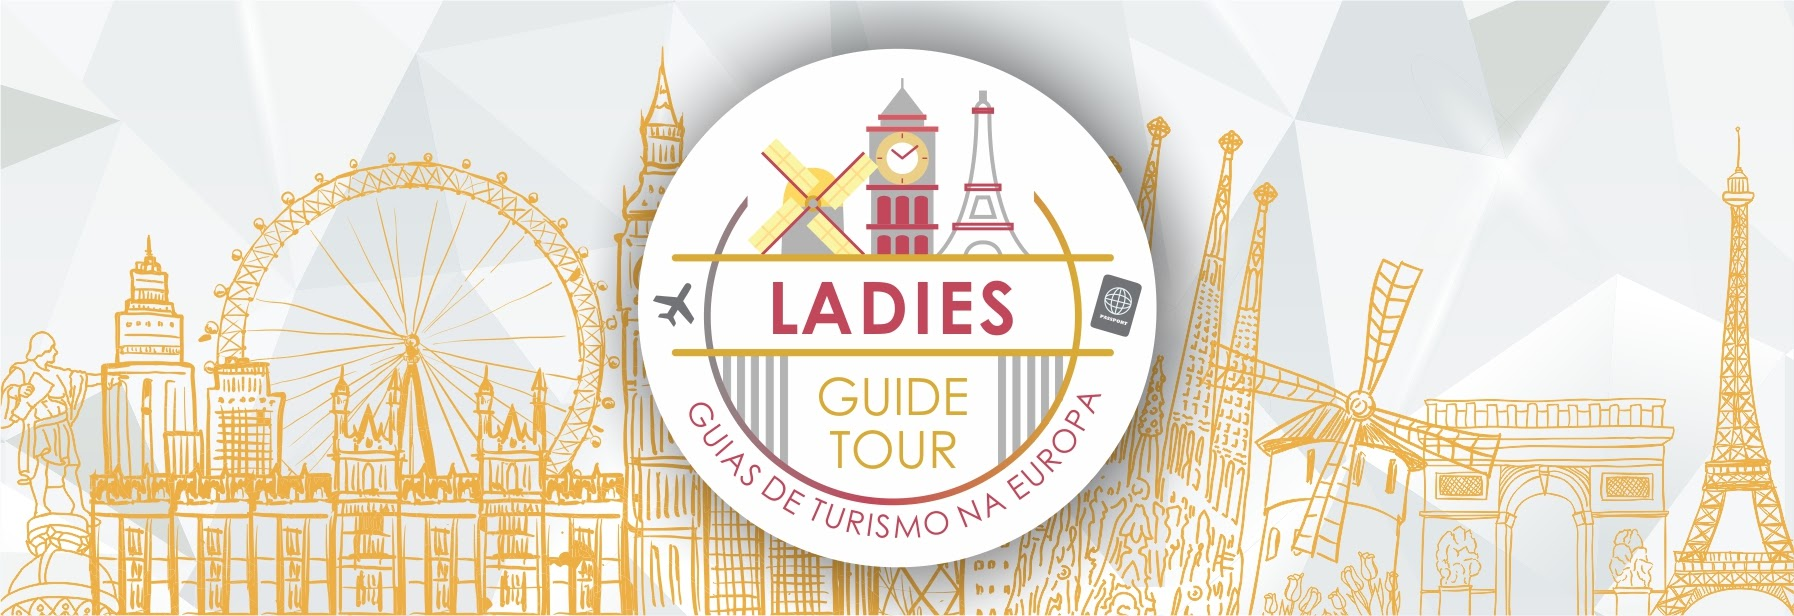 Ladies Guide Tour